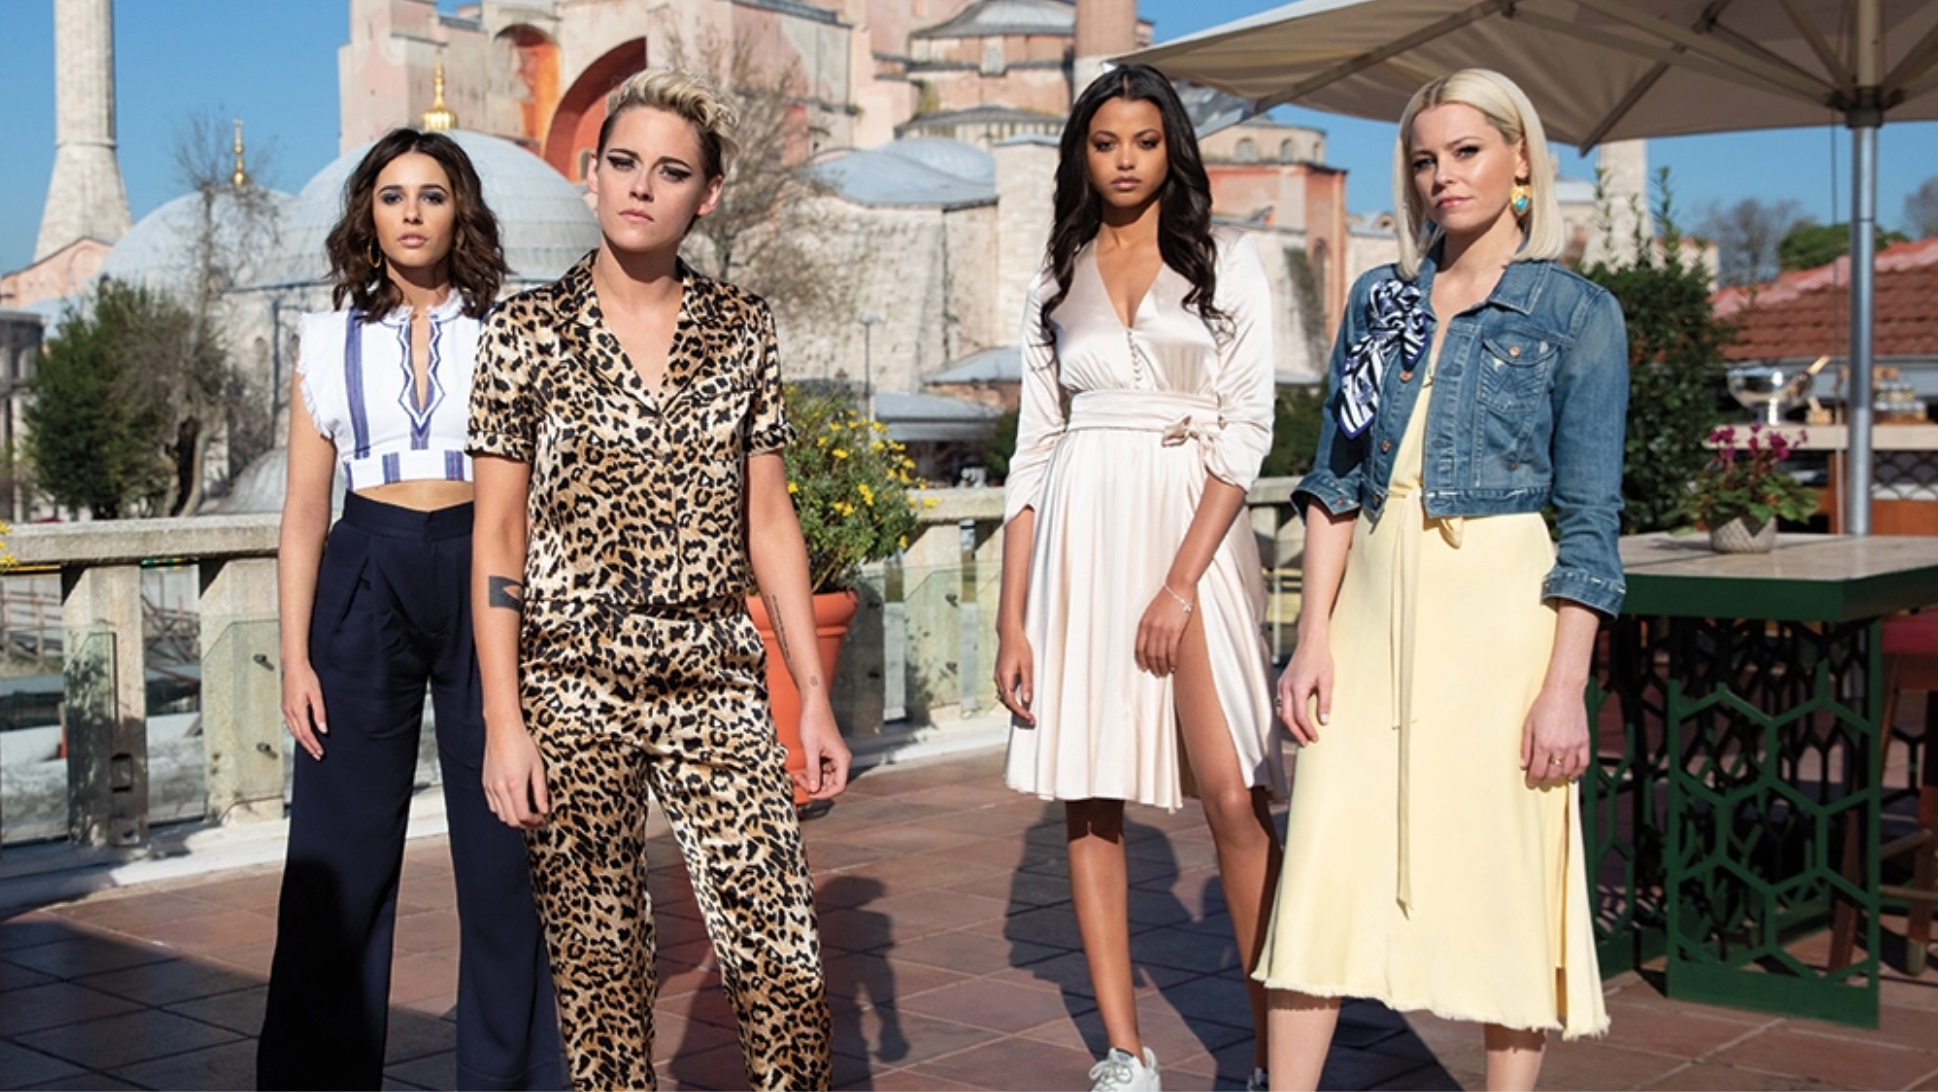 Image shows the cast of Charlie's Angels